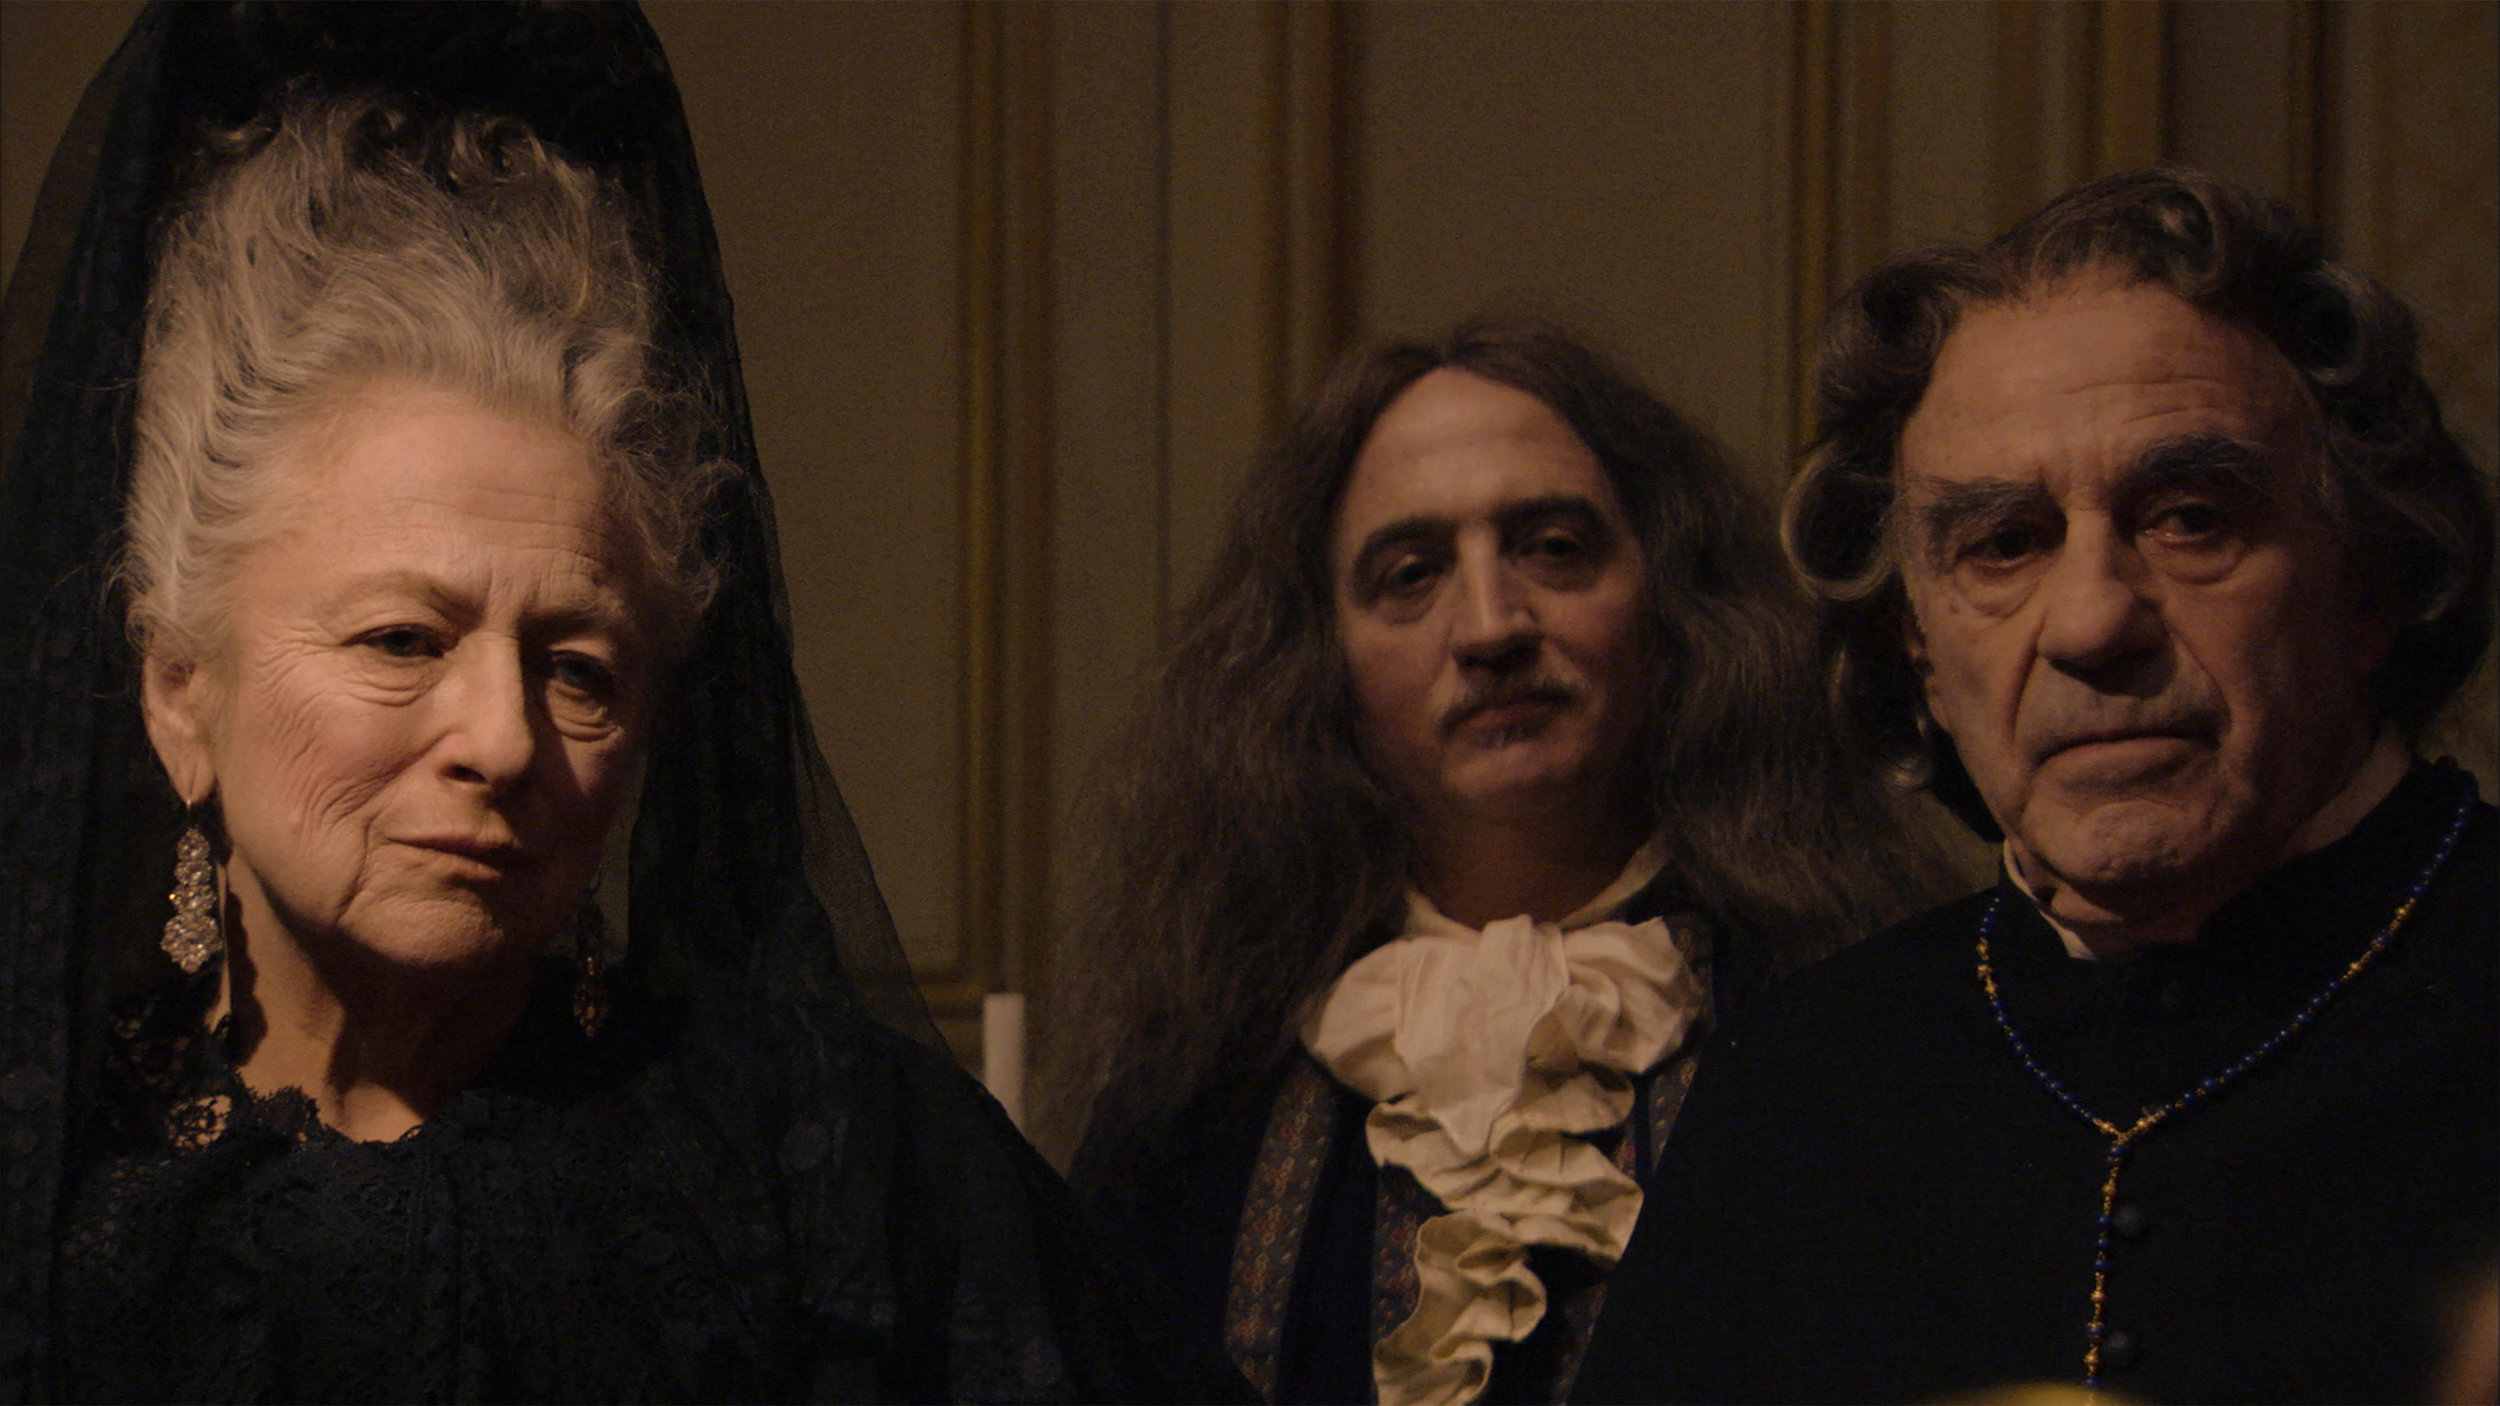 Irene Silvagni, Marc Susini and Jacques Henric in a scene from Albert Serra's  The Death of Louis XIV . Courtesy of Cinema Guild.